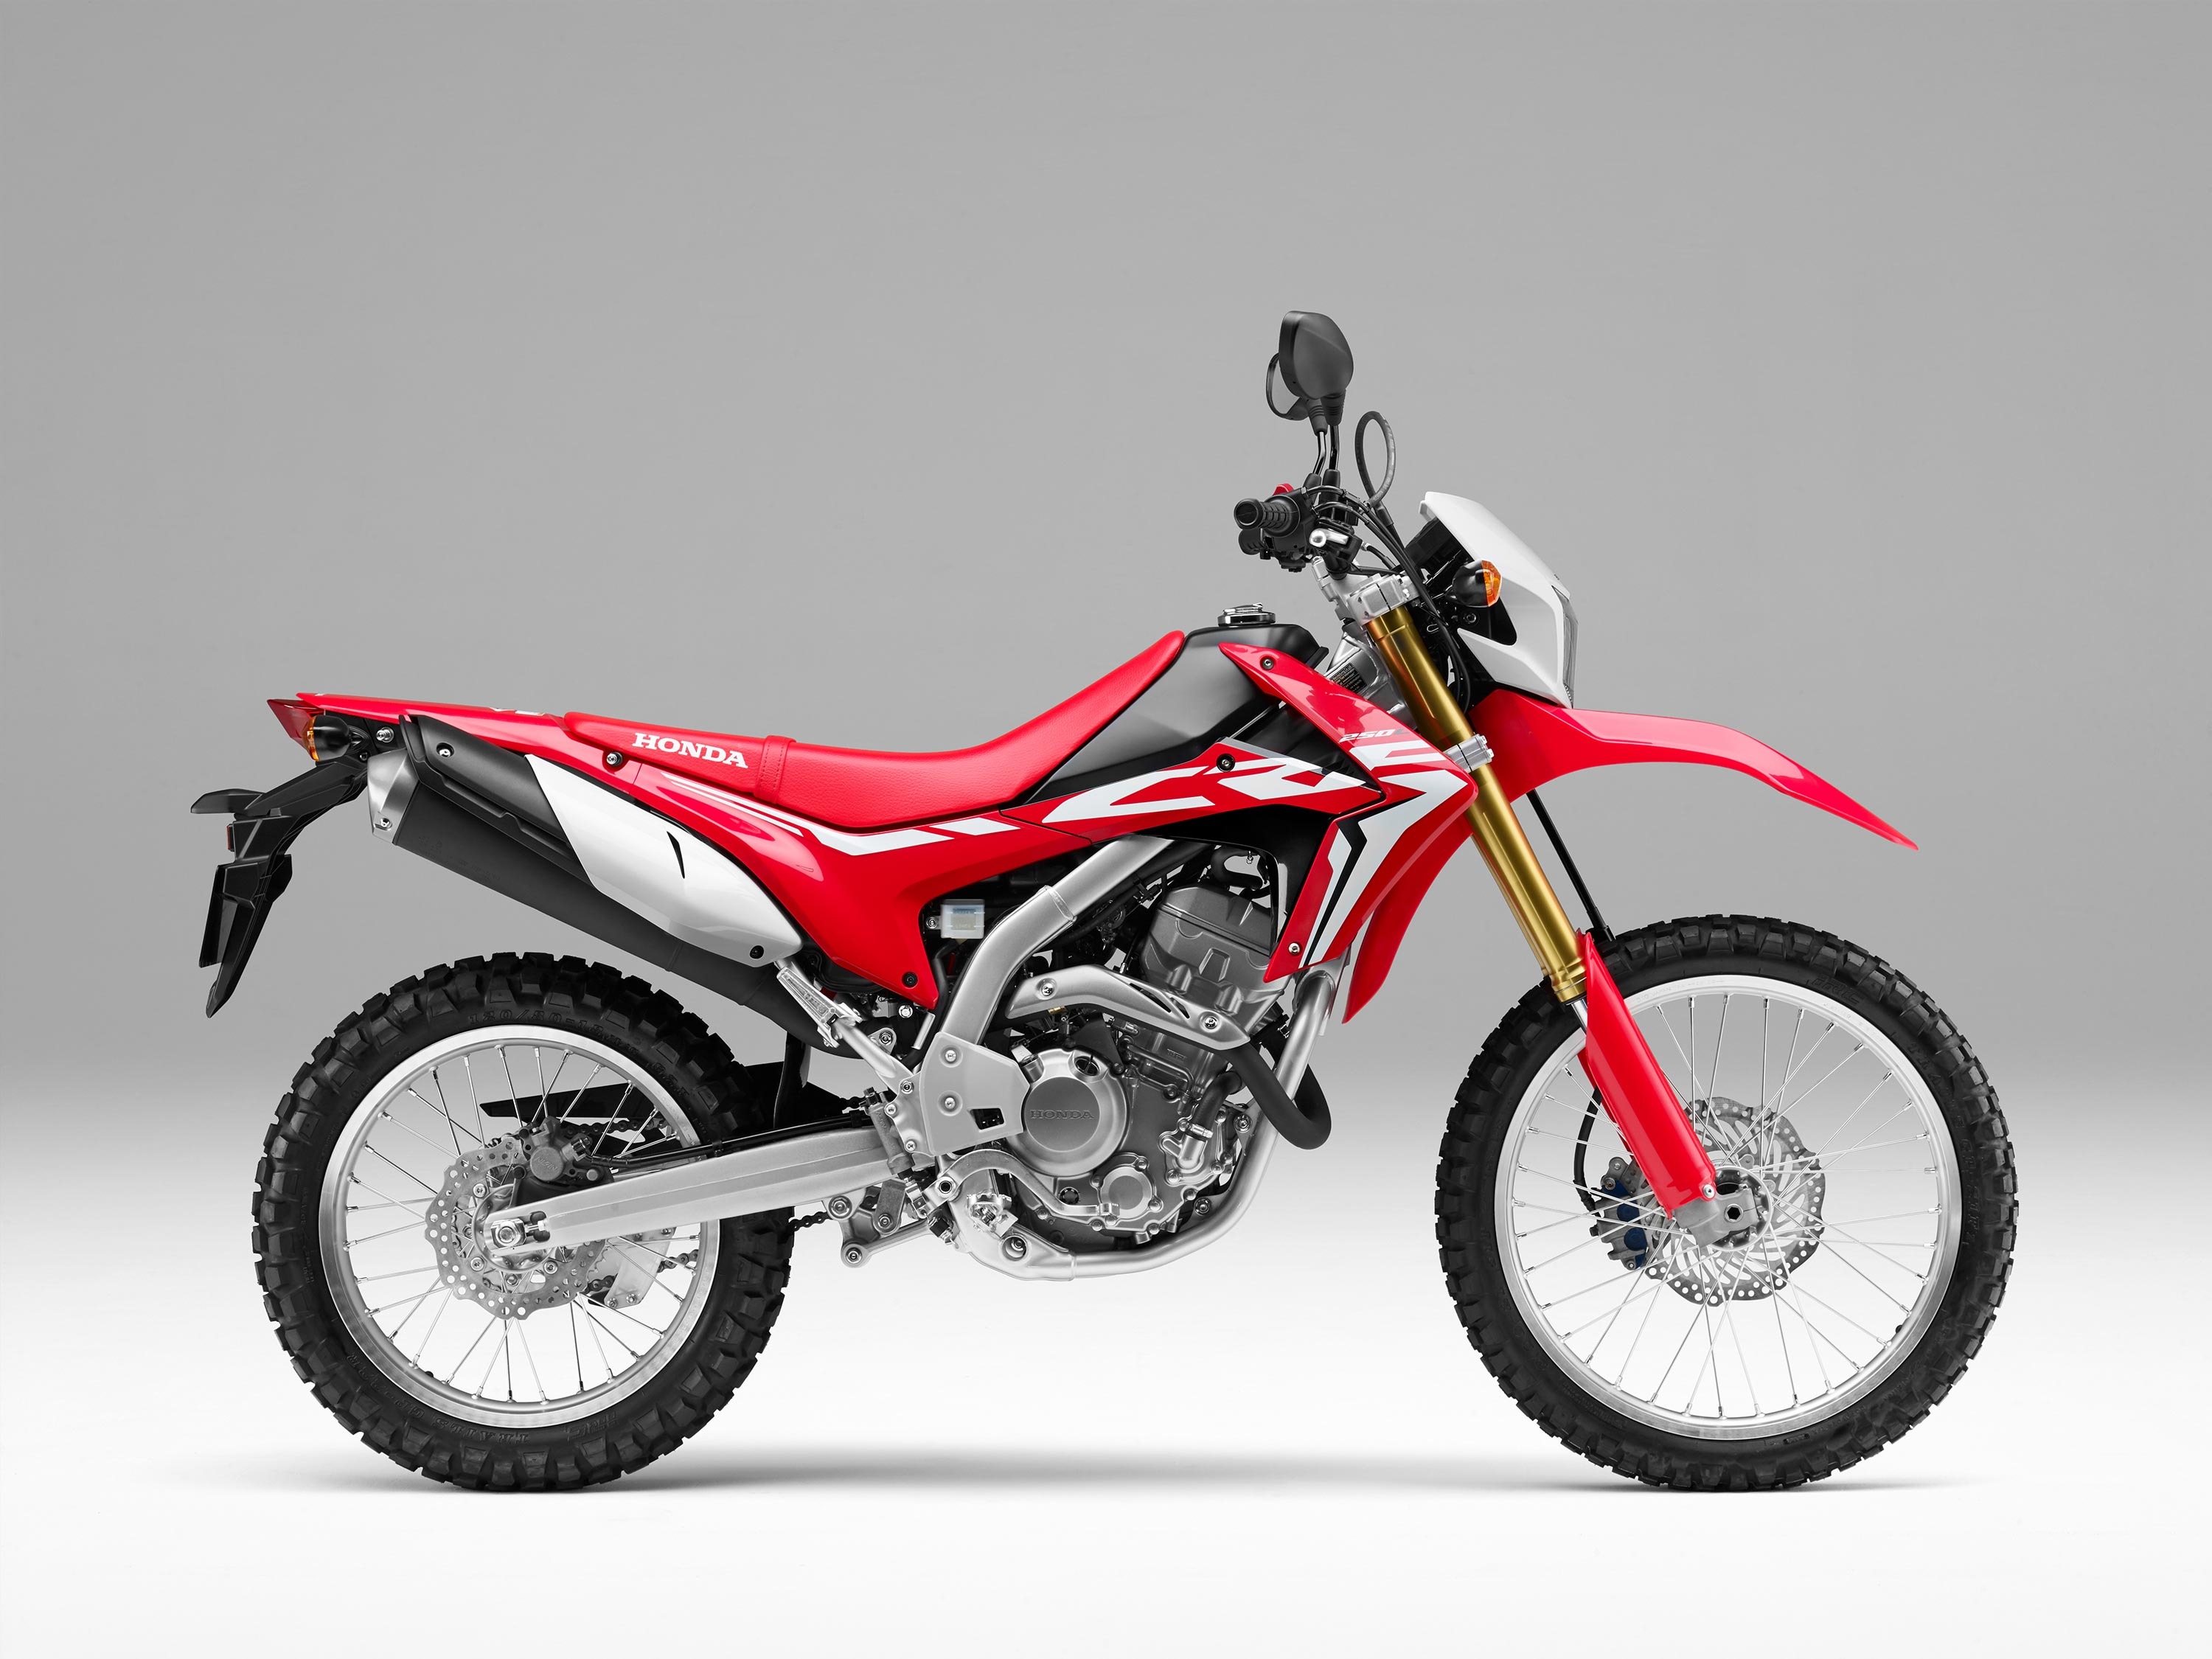 Honda Crf250l Recalled For Wiring Harness Malfunctions Asphalt Engine